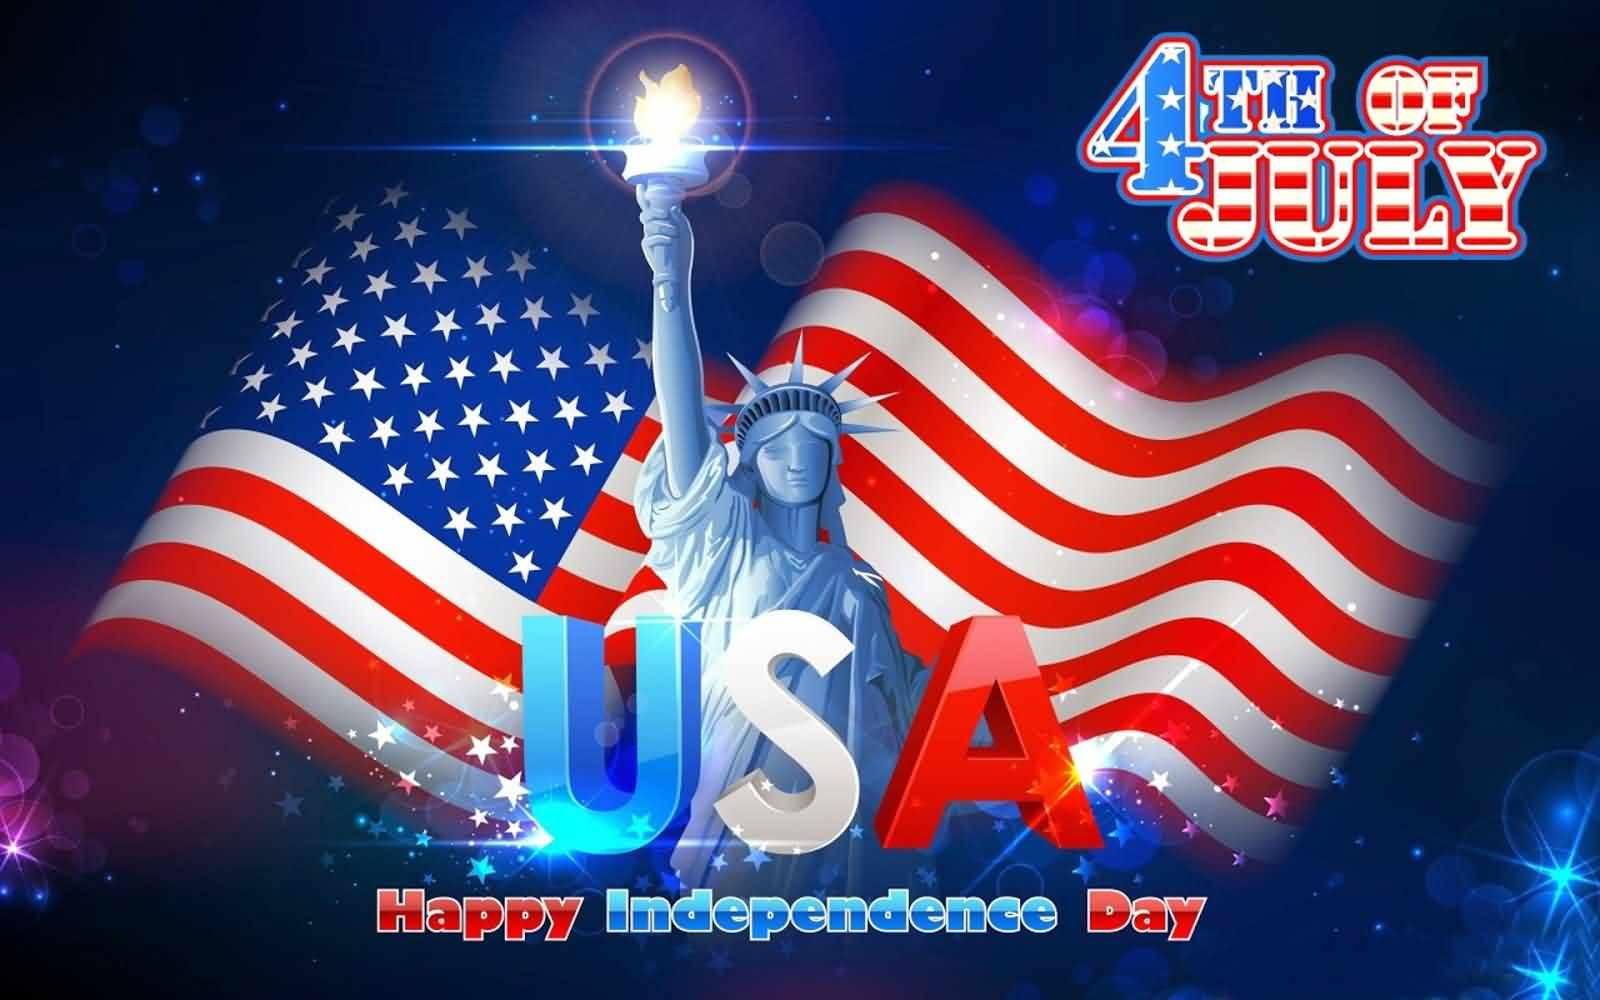 God Bless America Happy Independence Day 4th July Greetings and Wishes Wallpaper